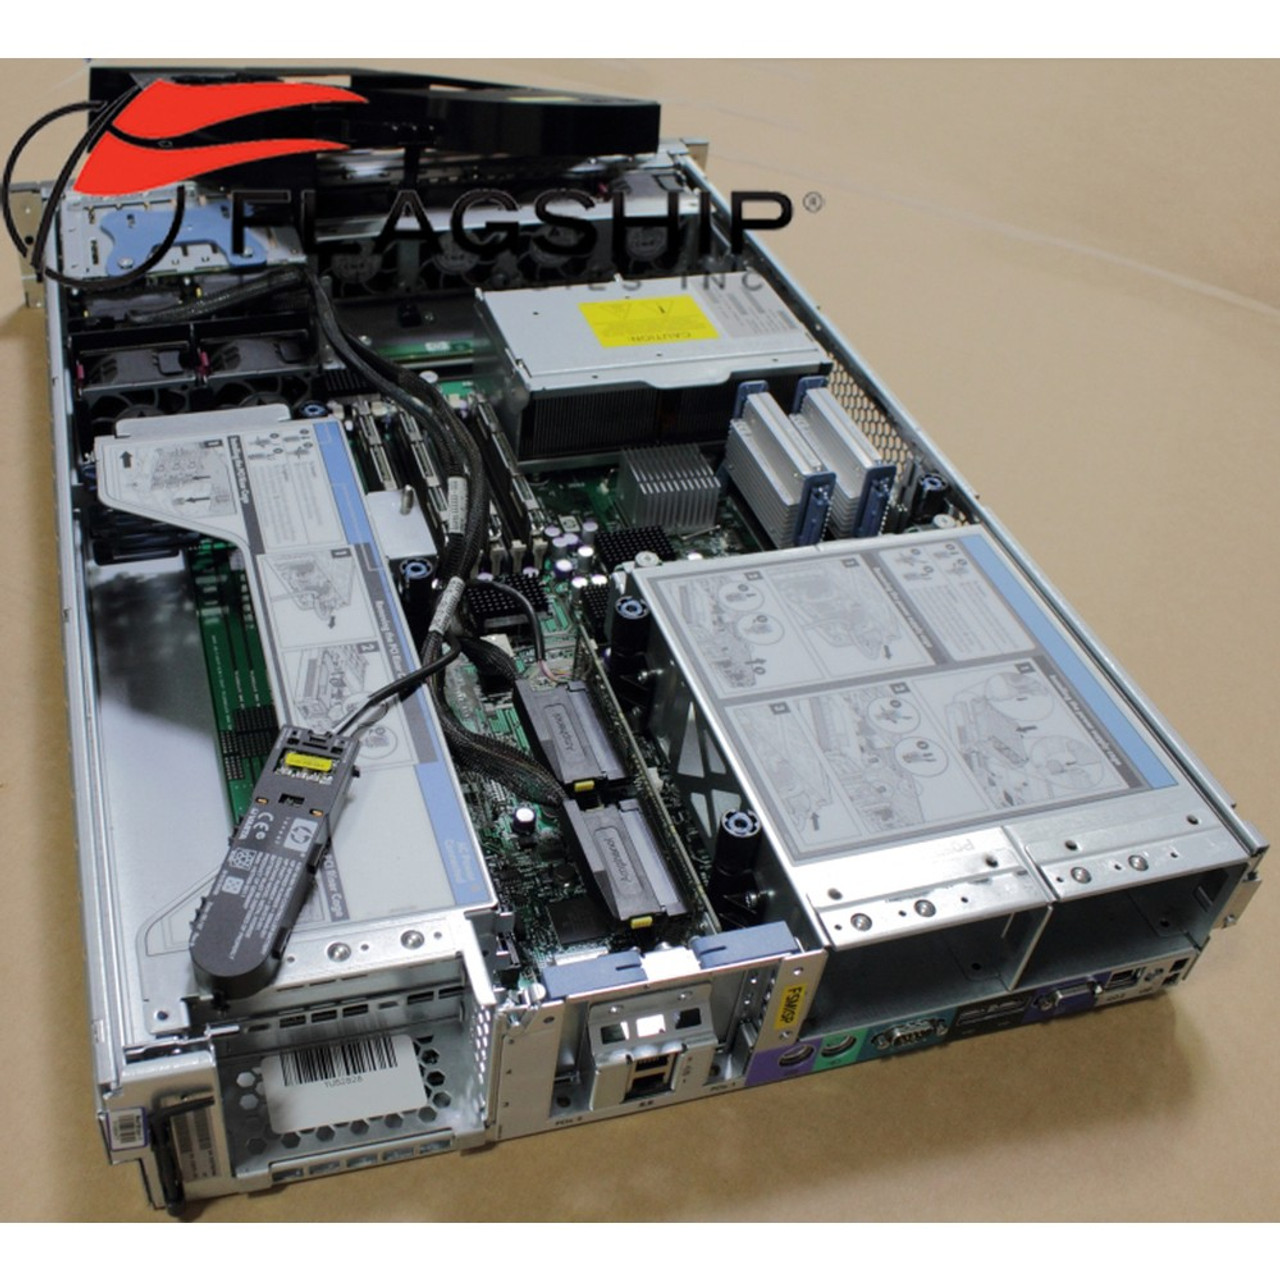 ✨ Dl380 g5 drivers | [SOLVED] HP ProLiant DL380 G5  2019-05-11